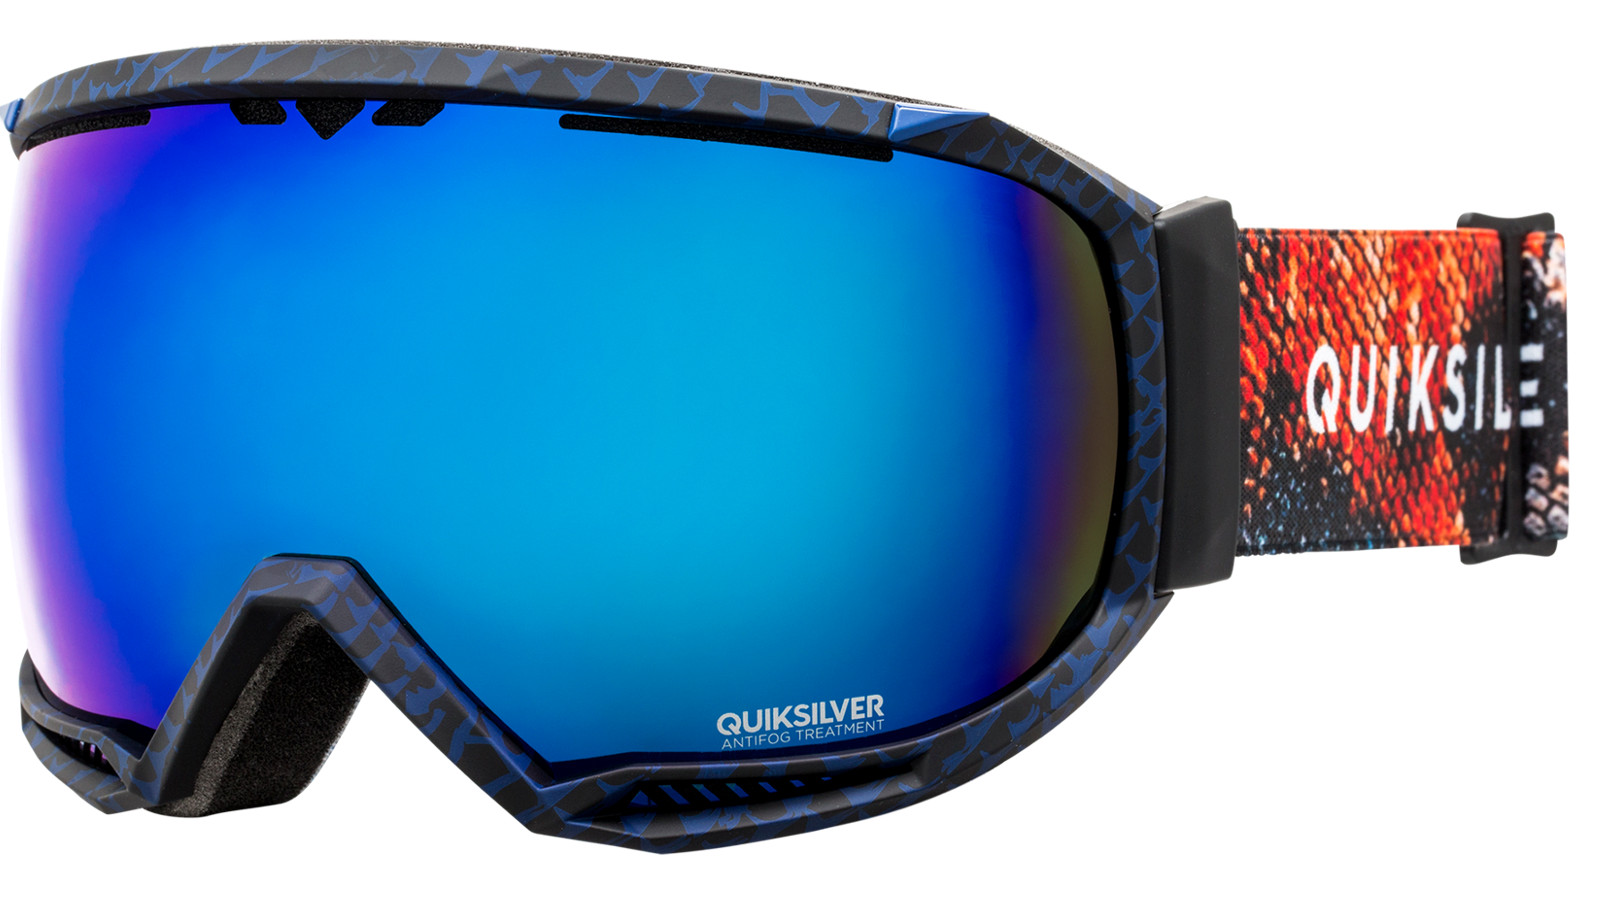 Quiksilver Goggles FW17/18 Preview - Boardsport SOURCE